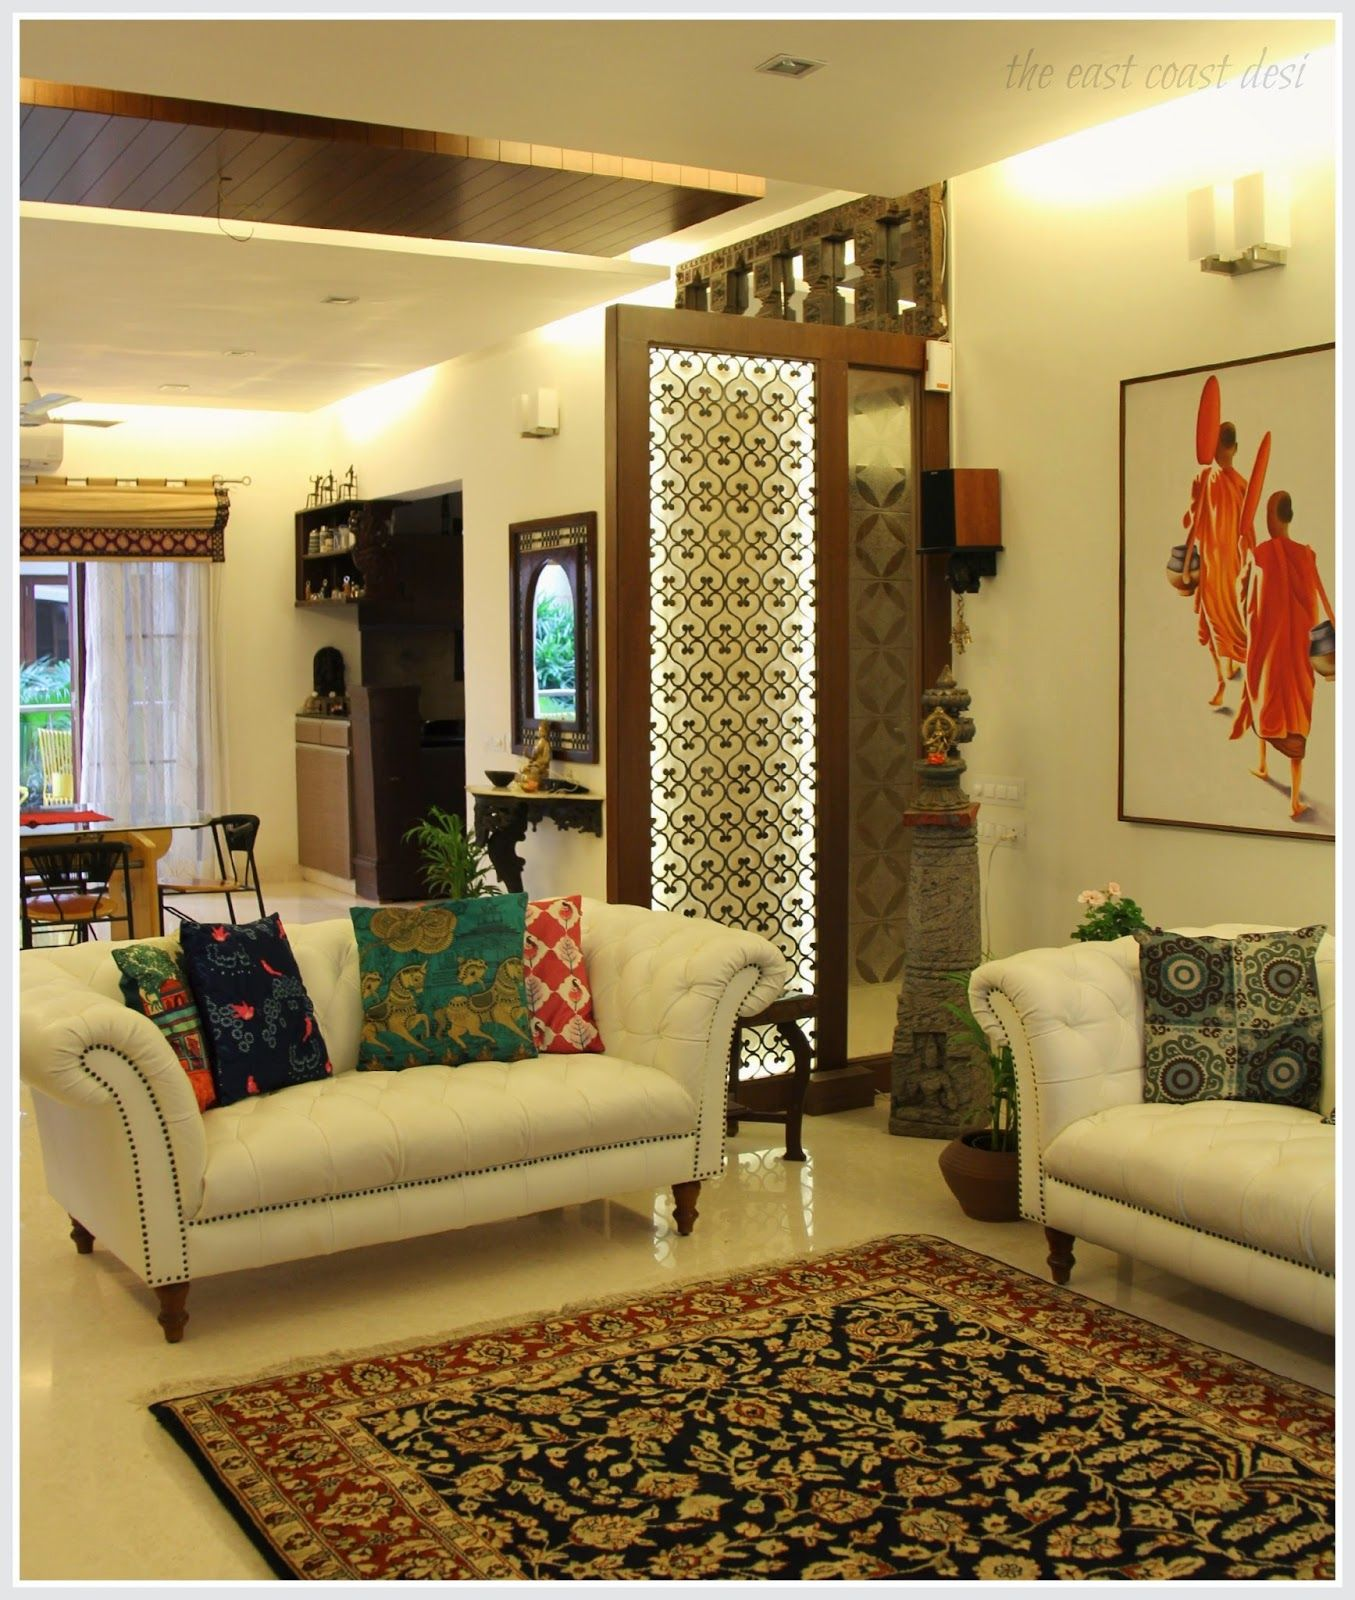 the east coast desi Masterful Mixing (Home tour) Decor